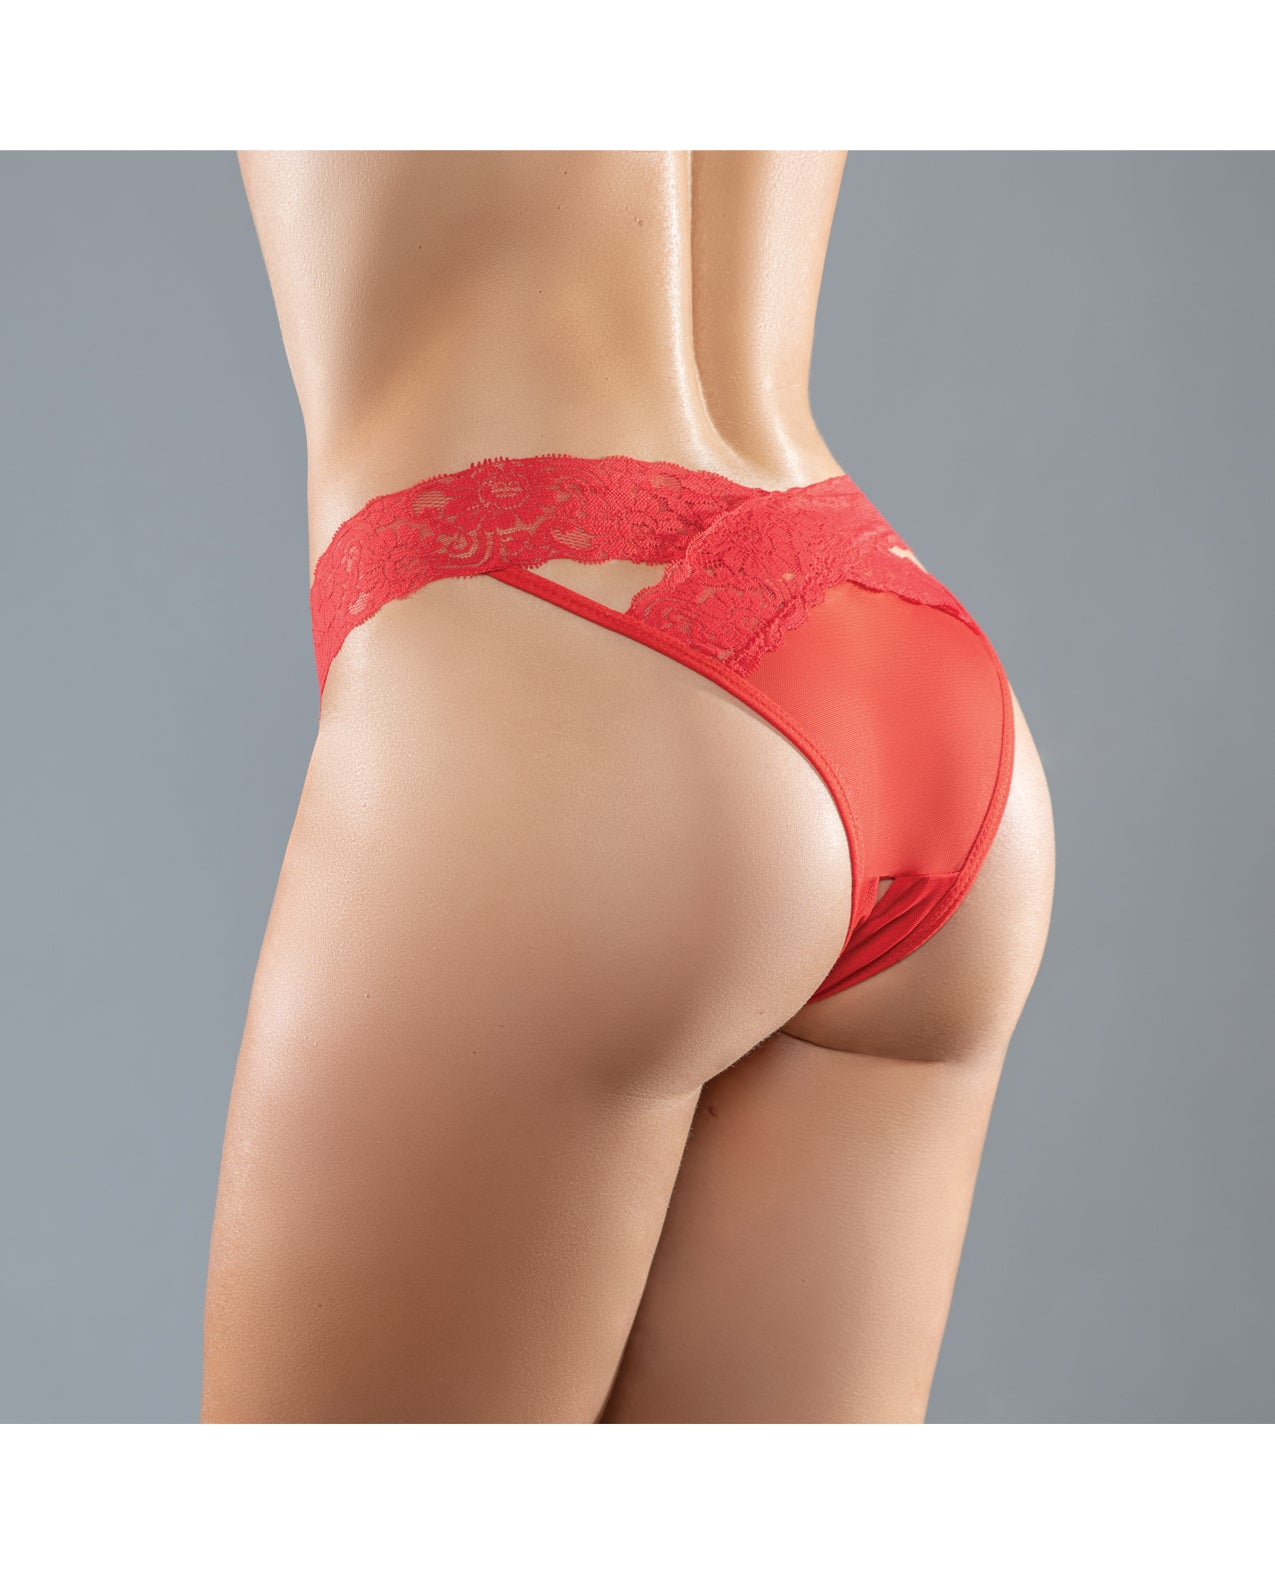 =Adore Sheer & Lace Desire Panty Red O/S